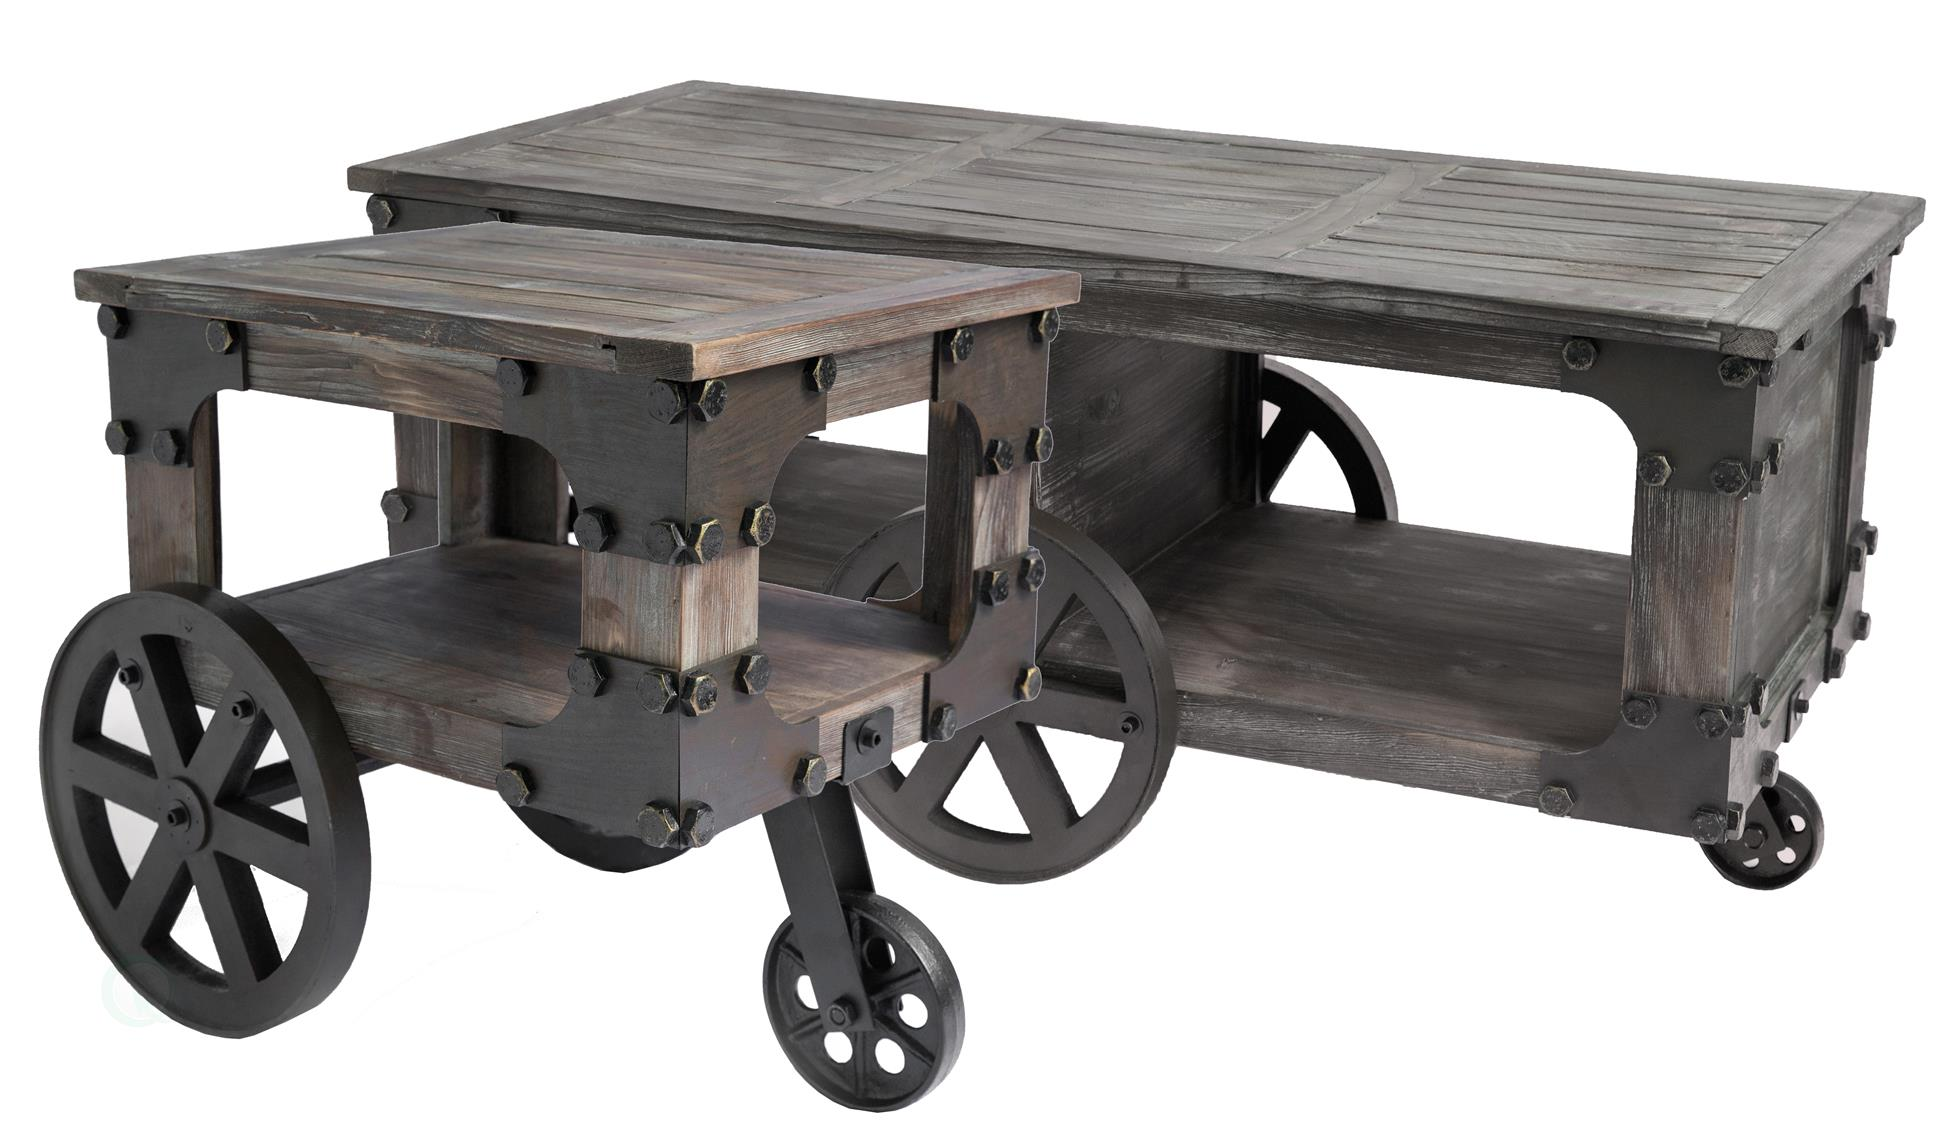 Rustic Industrial Wagon Style Coffee End Table With Storage Shelf